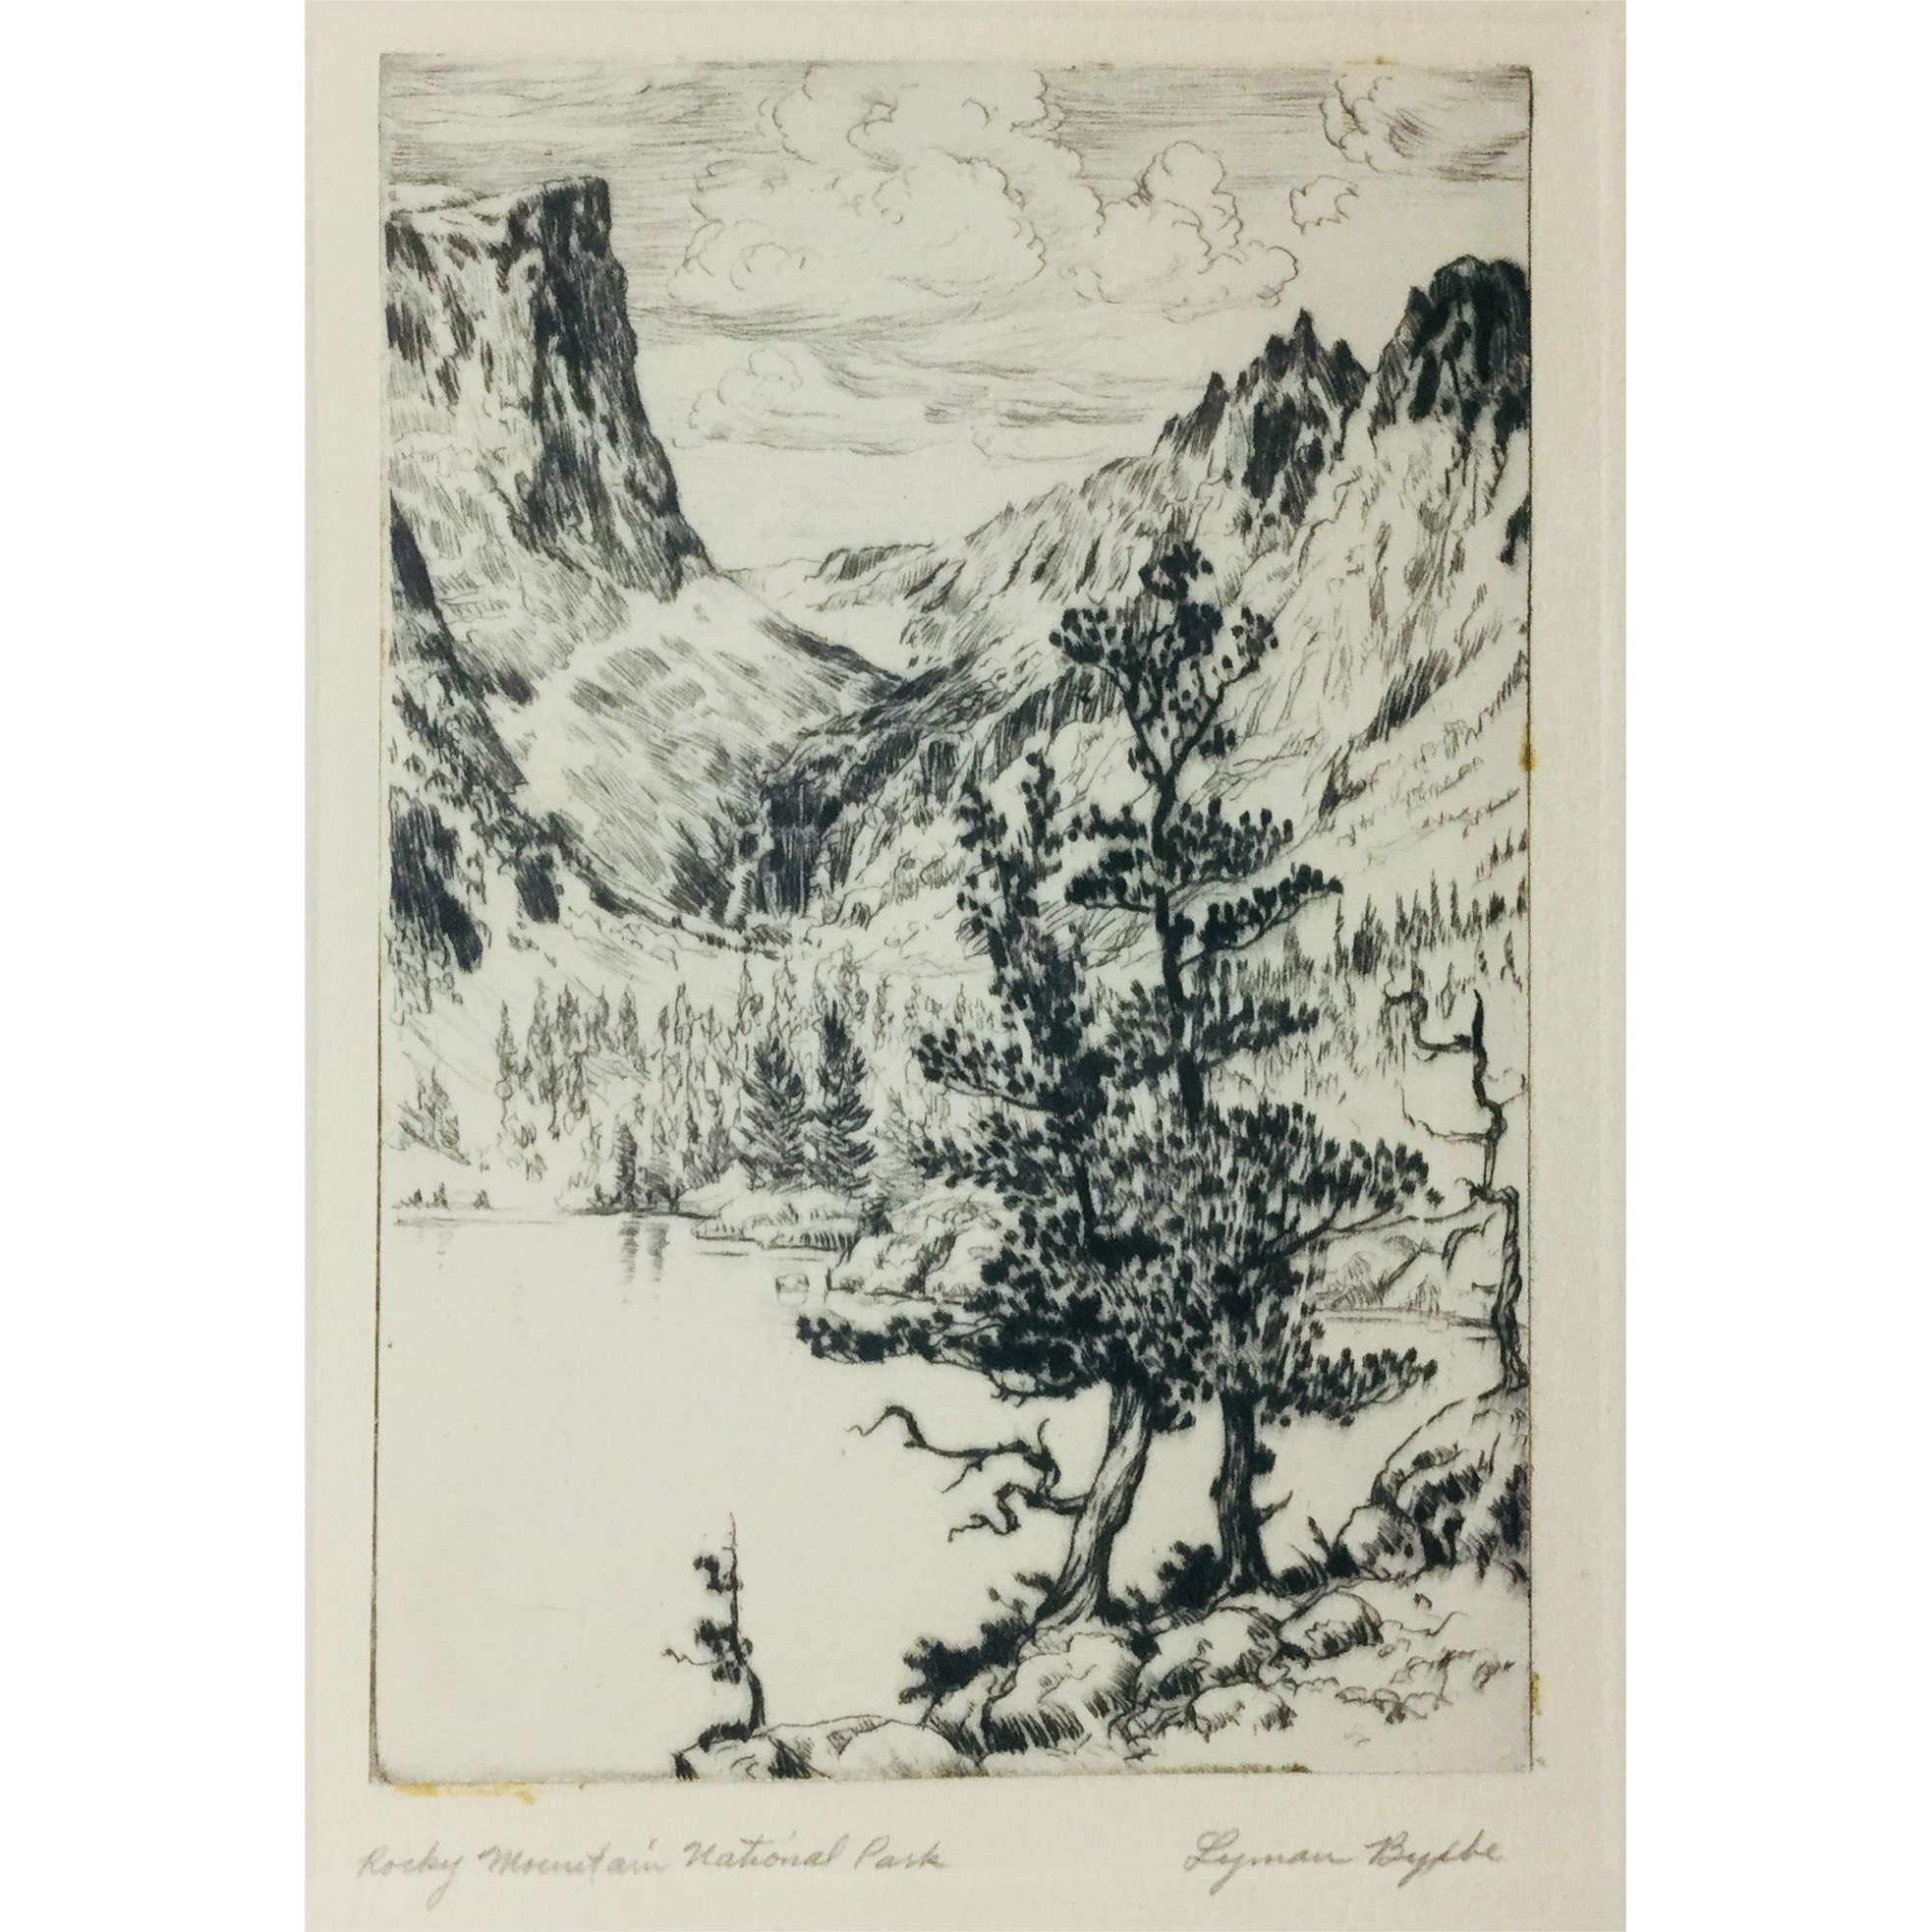 Rocky drawing original. Lyman byxbe etching mountain